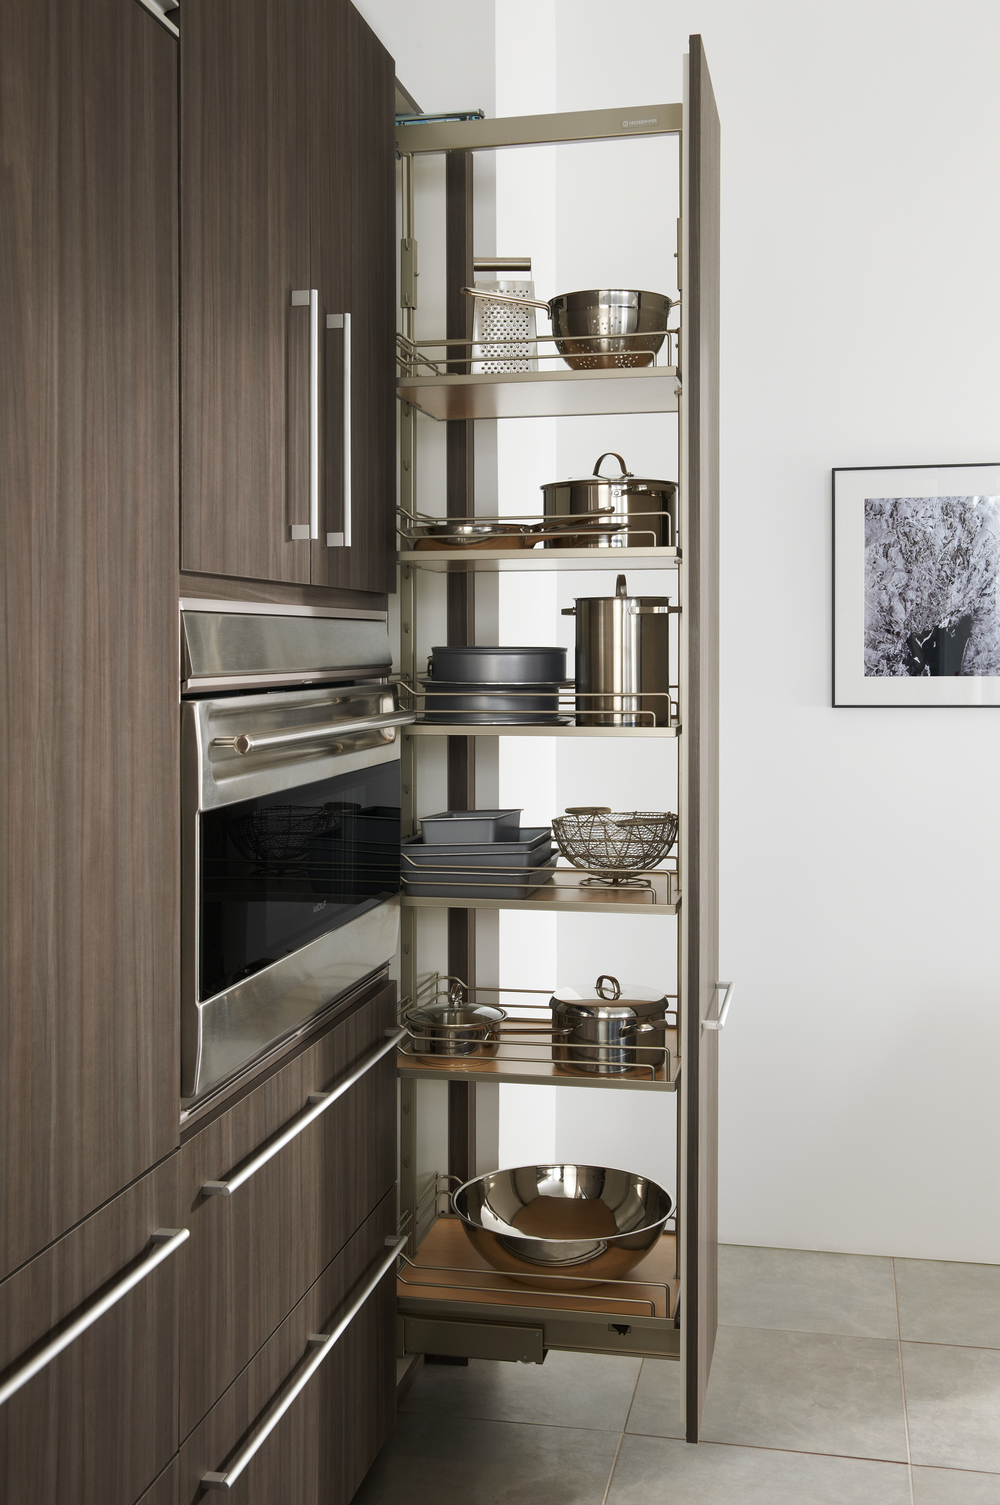 Even the most unlikely spaces can become storage superstars with DISPENSA. Perfect for utilizing the complete width and height of tall cabinets, DISPENSA slides out to make sure not one speck of space is wasted. Individually suspended and adjustable shelves feature simple railings that keep everything in its place – and in plain view, too.